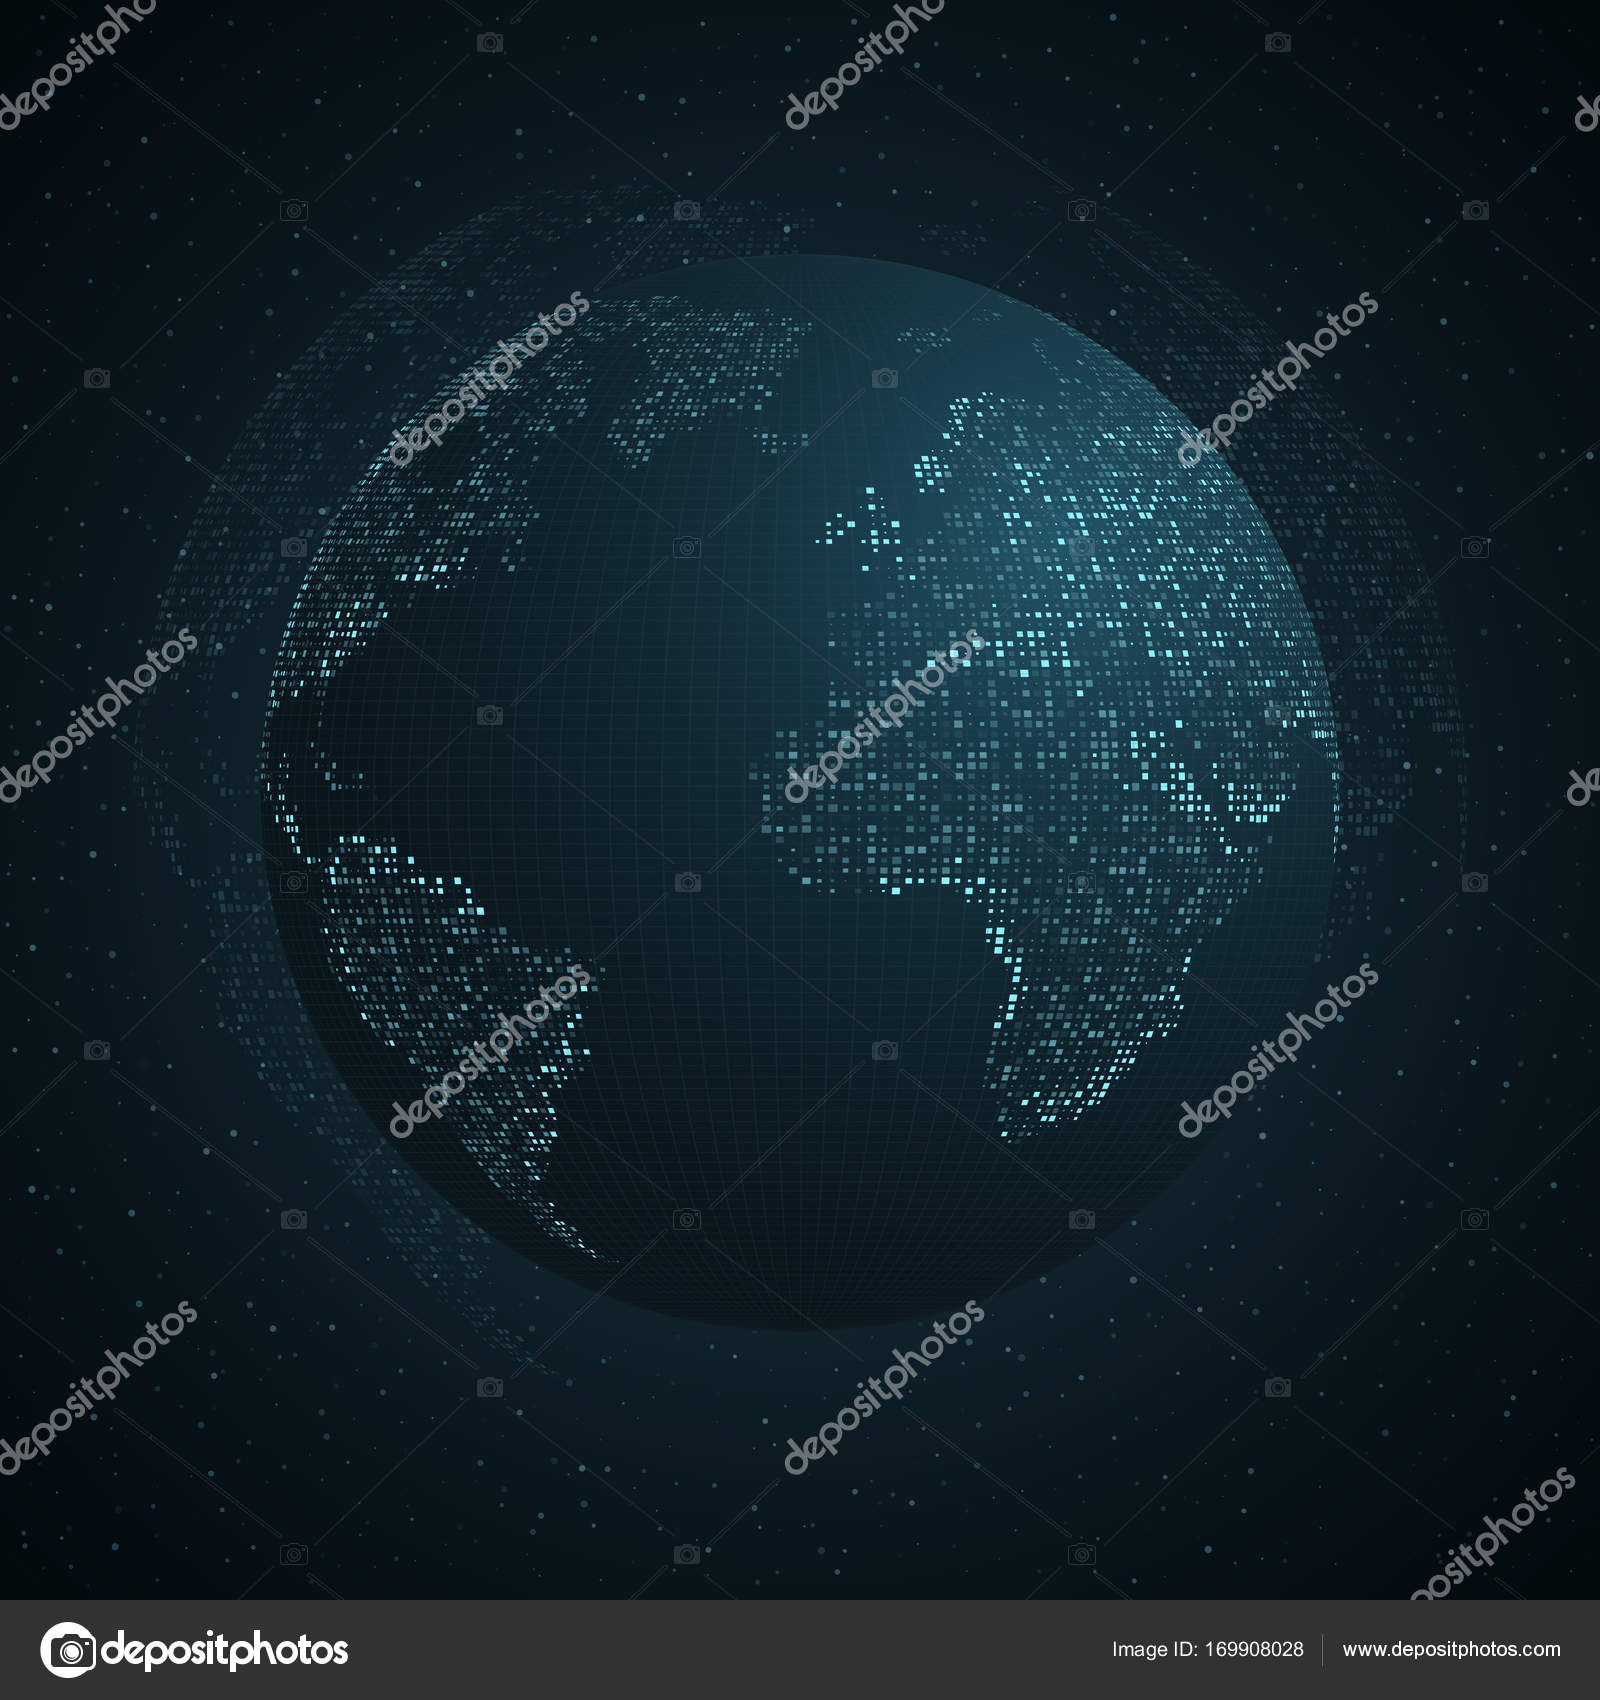 Abstract planet earth blue map of the earth from the square blue map of the earth from the square points dark background blue glow modern tech world map global network connection international meaning gumiabroncs Images